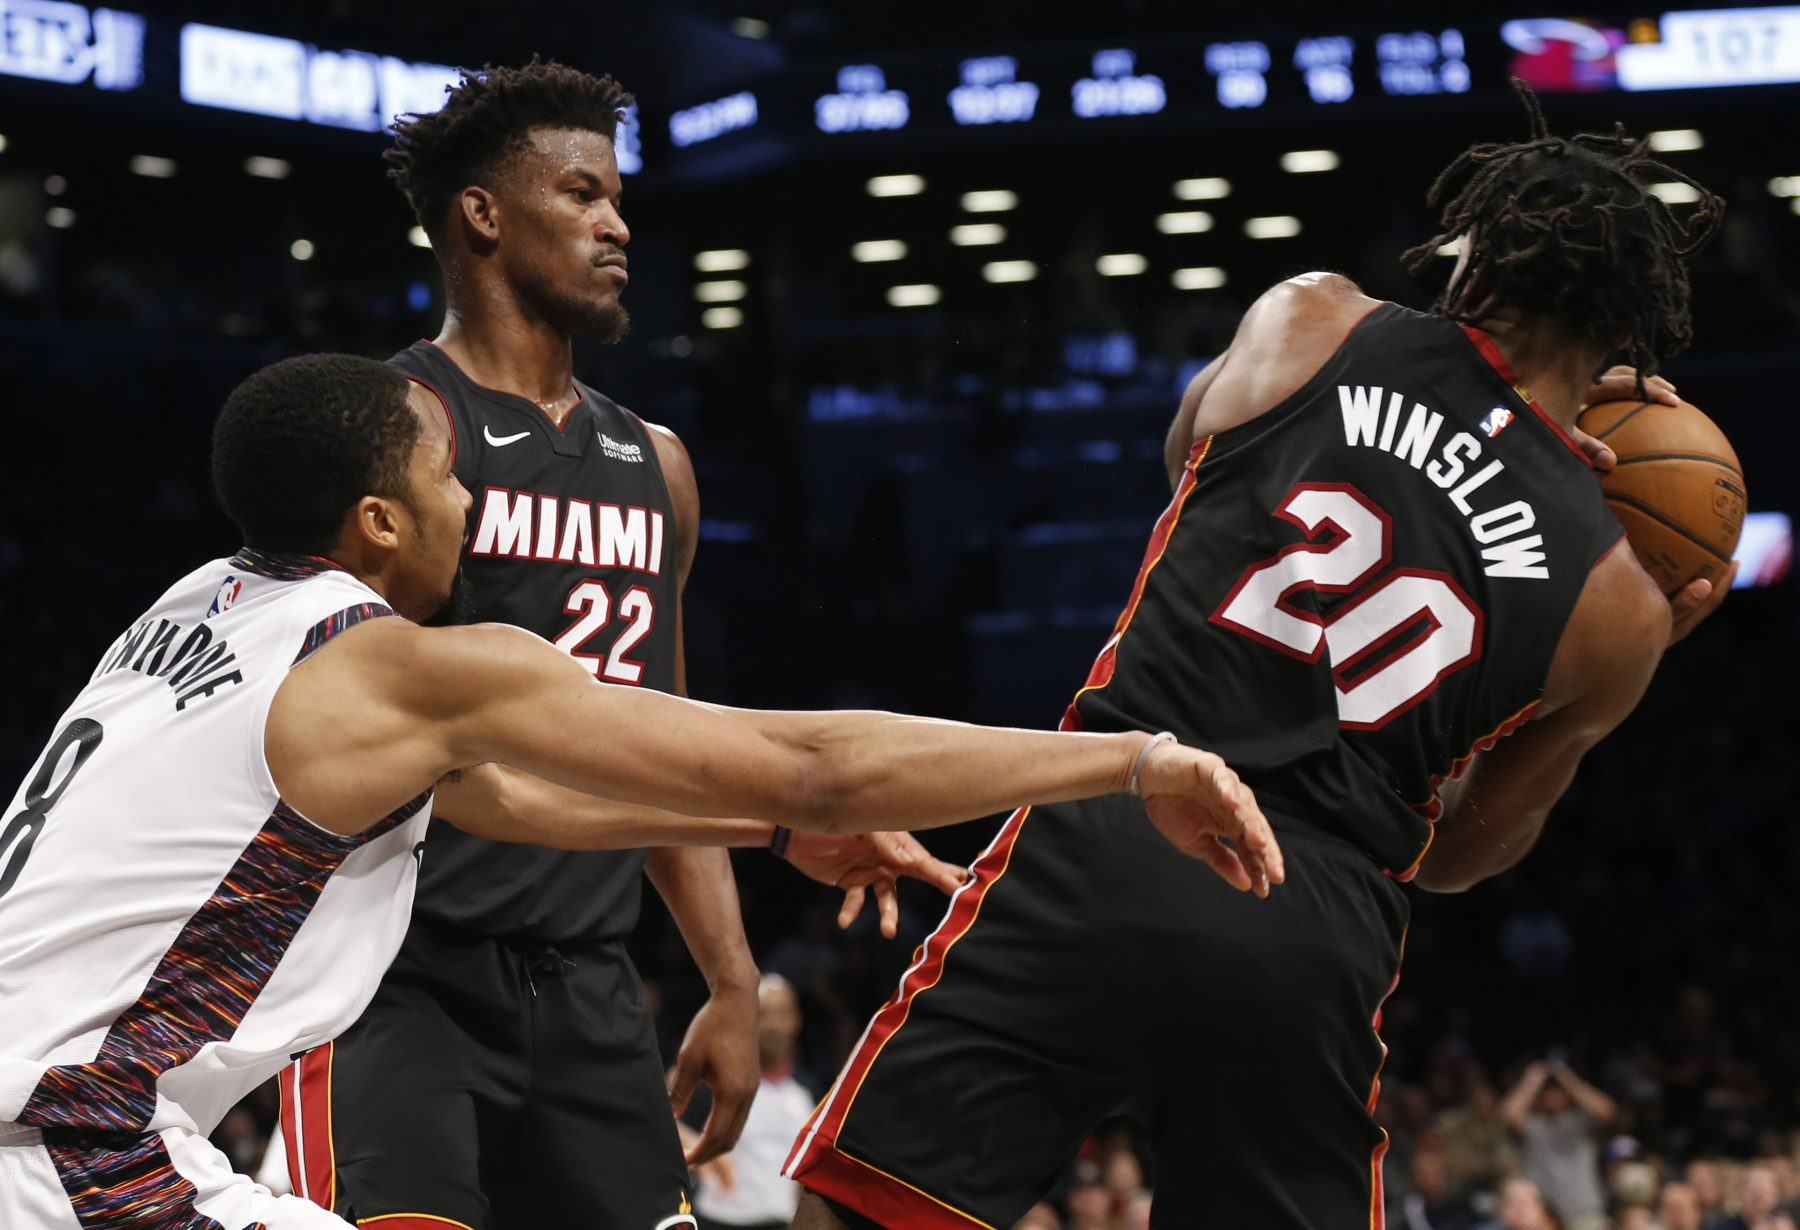 Jimmy Butler and Justise Winslow